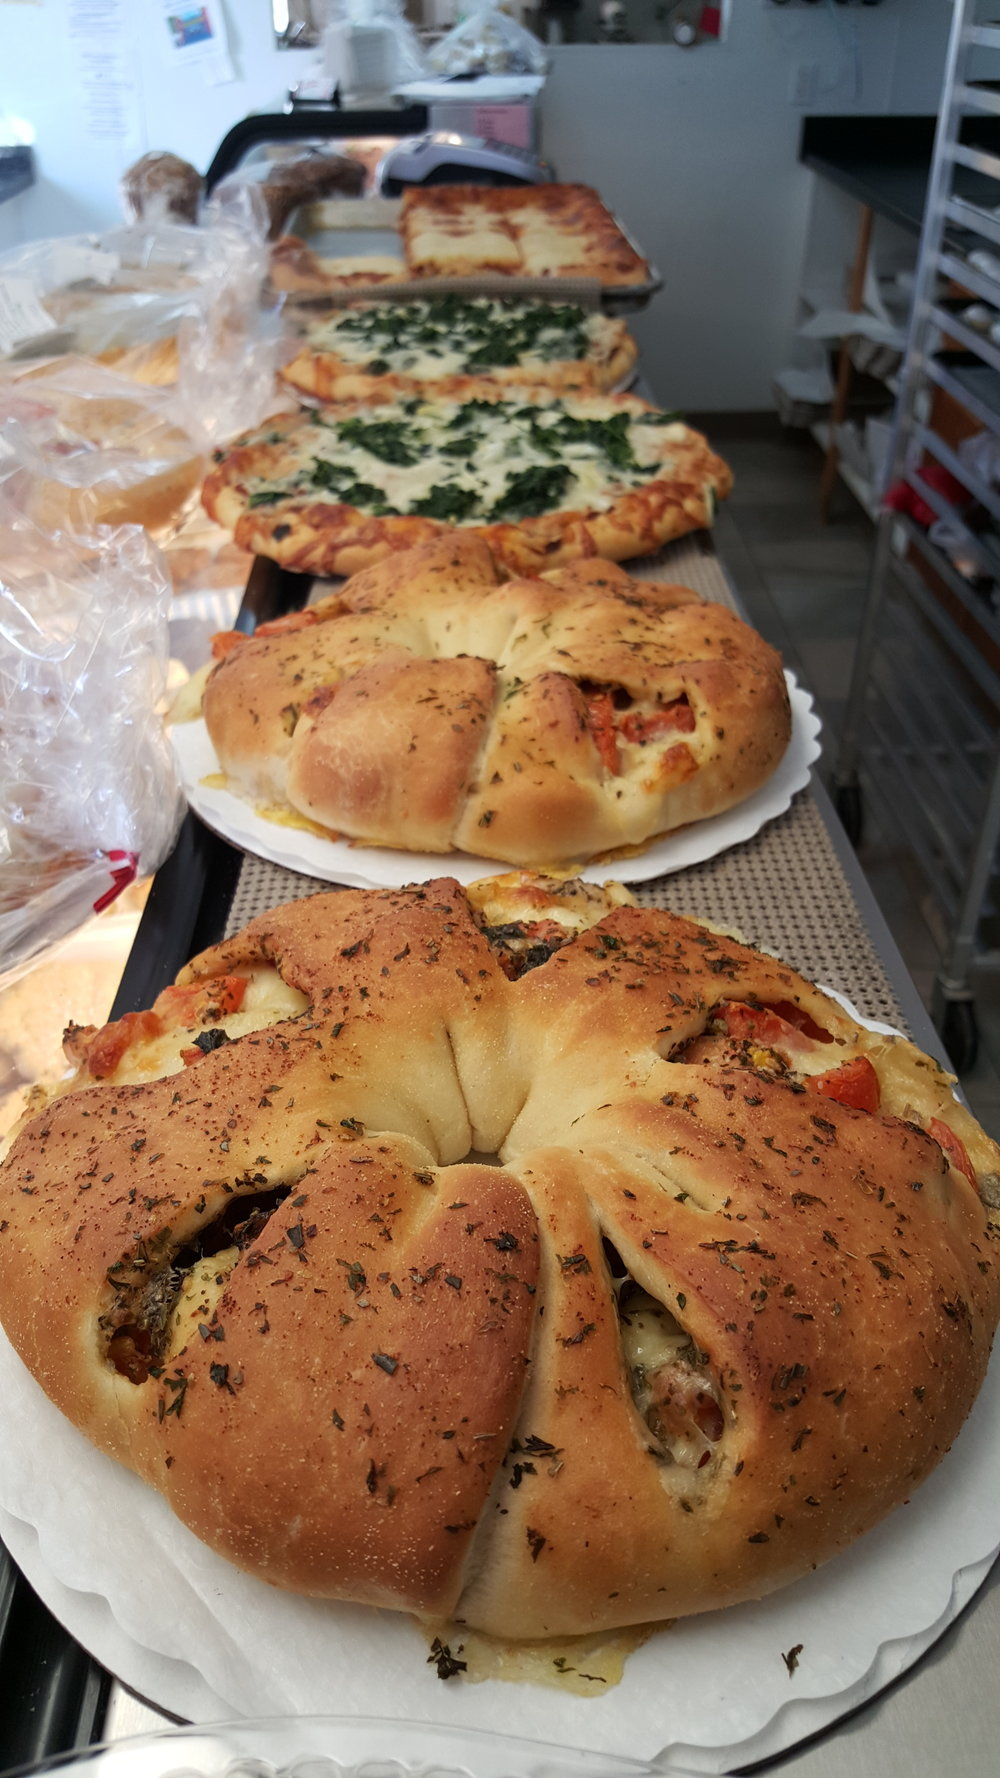 Stuffed Breads & Pizzas